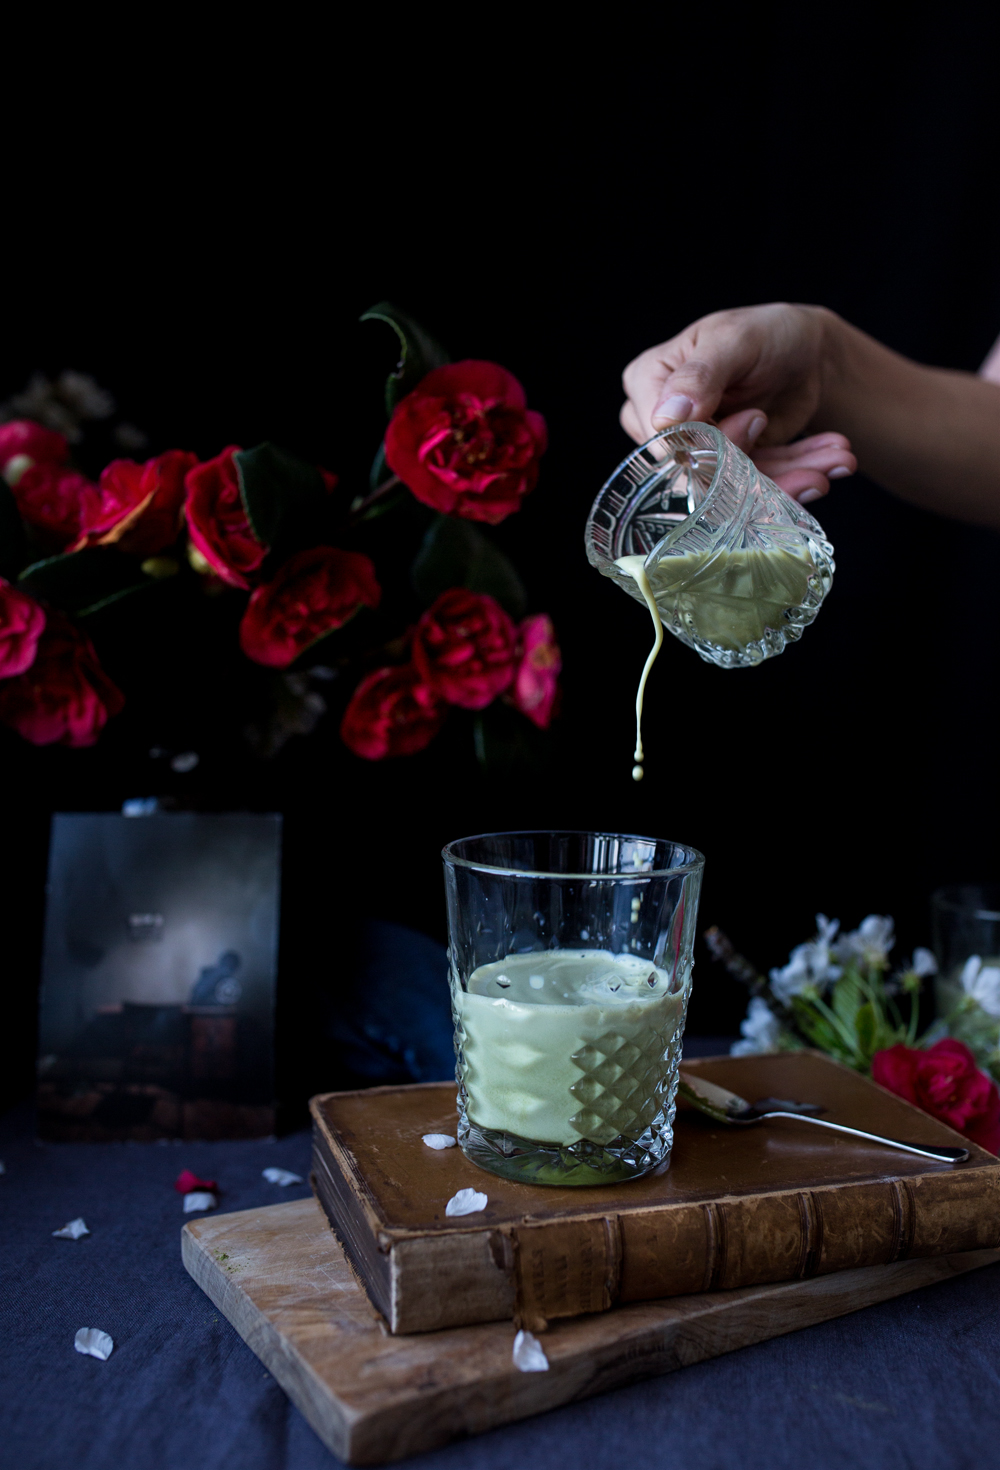 Online food styling and food photography course - The Little Plantation